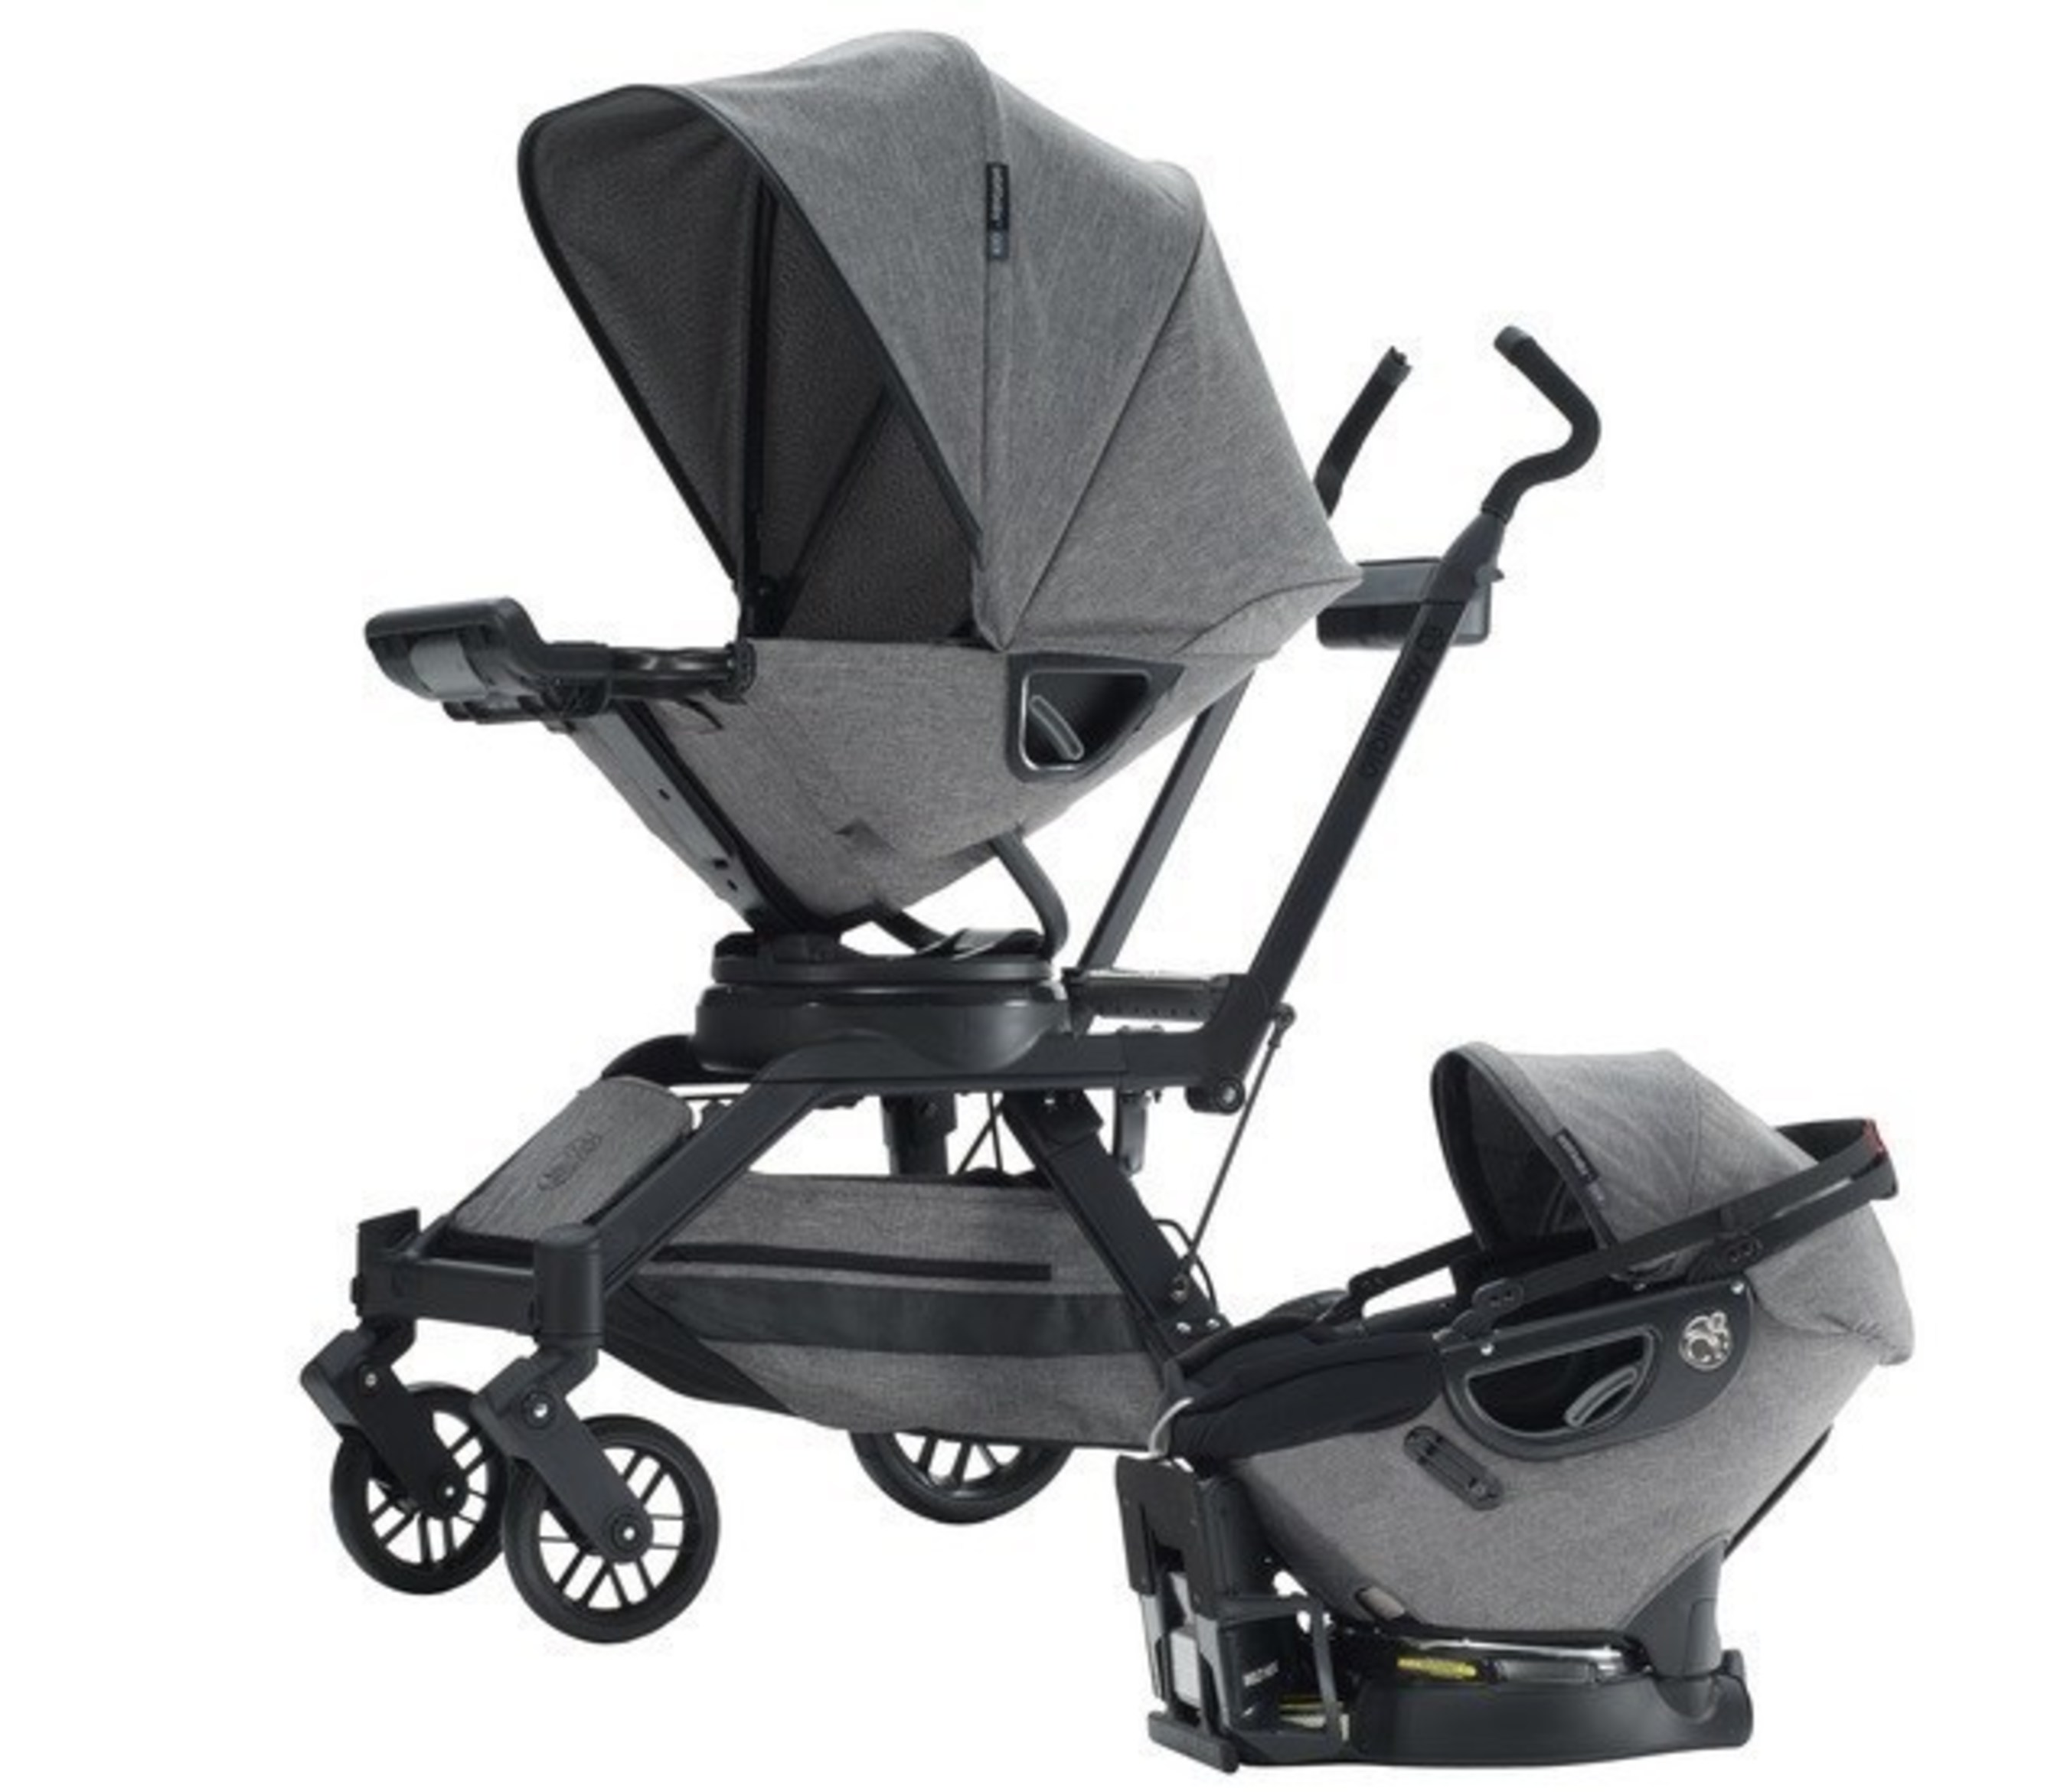 This One Time Limited Quantity Ensemble Includes 6 Pieces G3 Infant Car Seat And Base Stroller Cargo Basket Sunshade Is